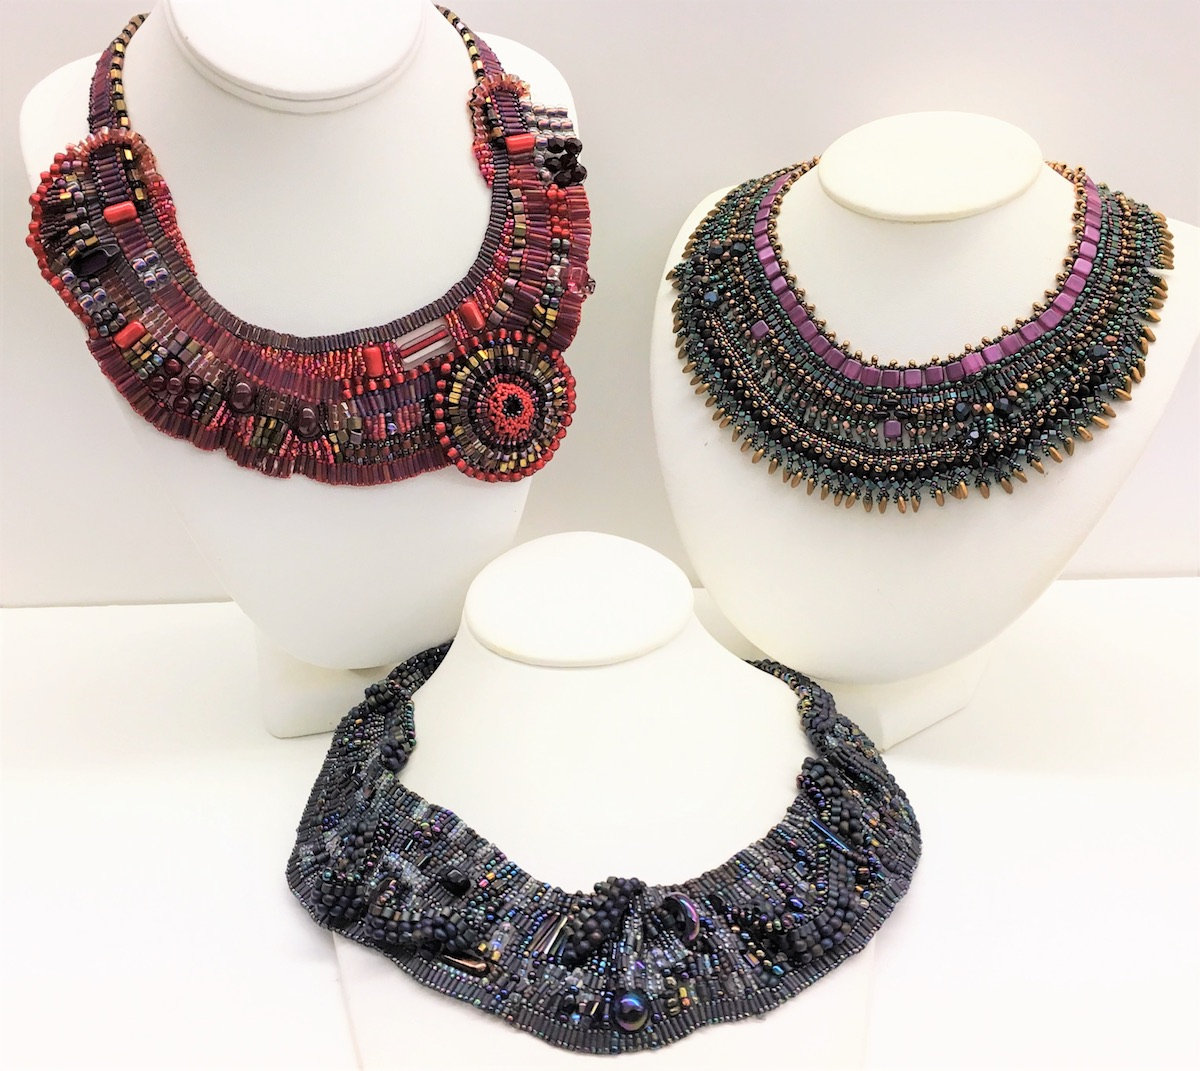 Look at some of the beautifully freeing designs you can make at Bead Fest! Join Cheryl Erickson for her class on Freeform Brick Stitch.